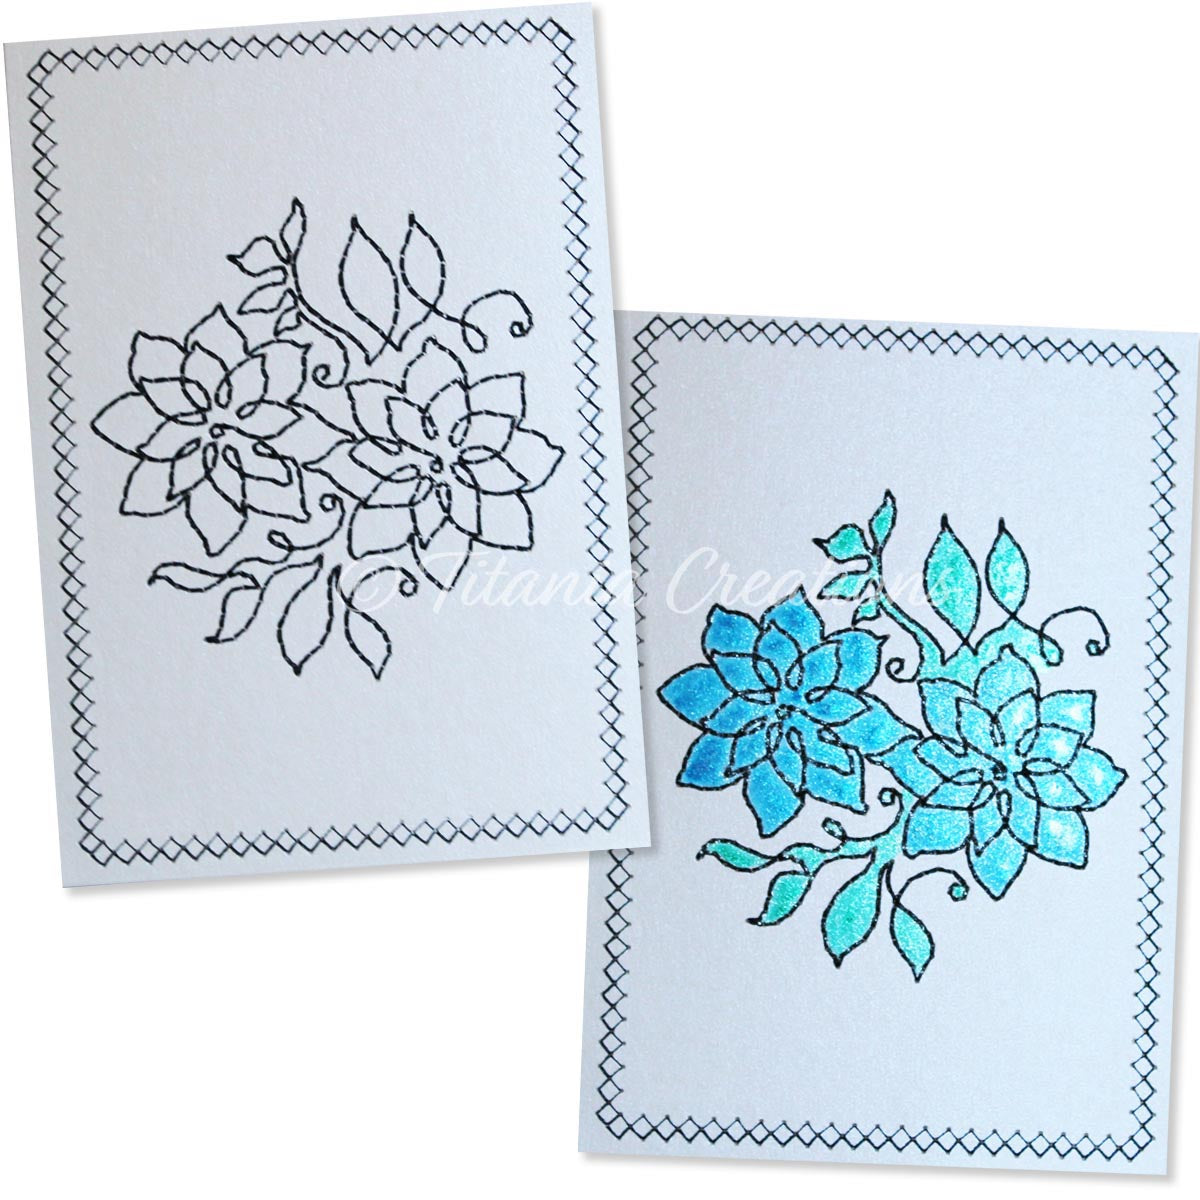 Simply Floral 09 Card Stock Design 5x7